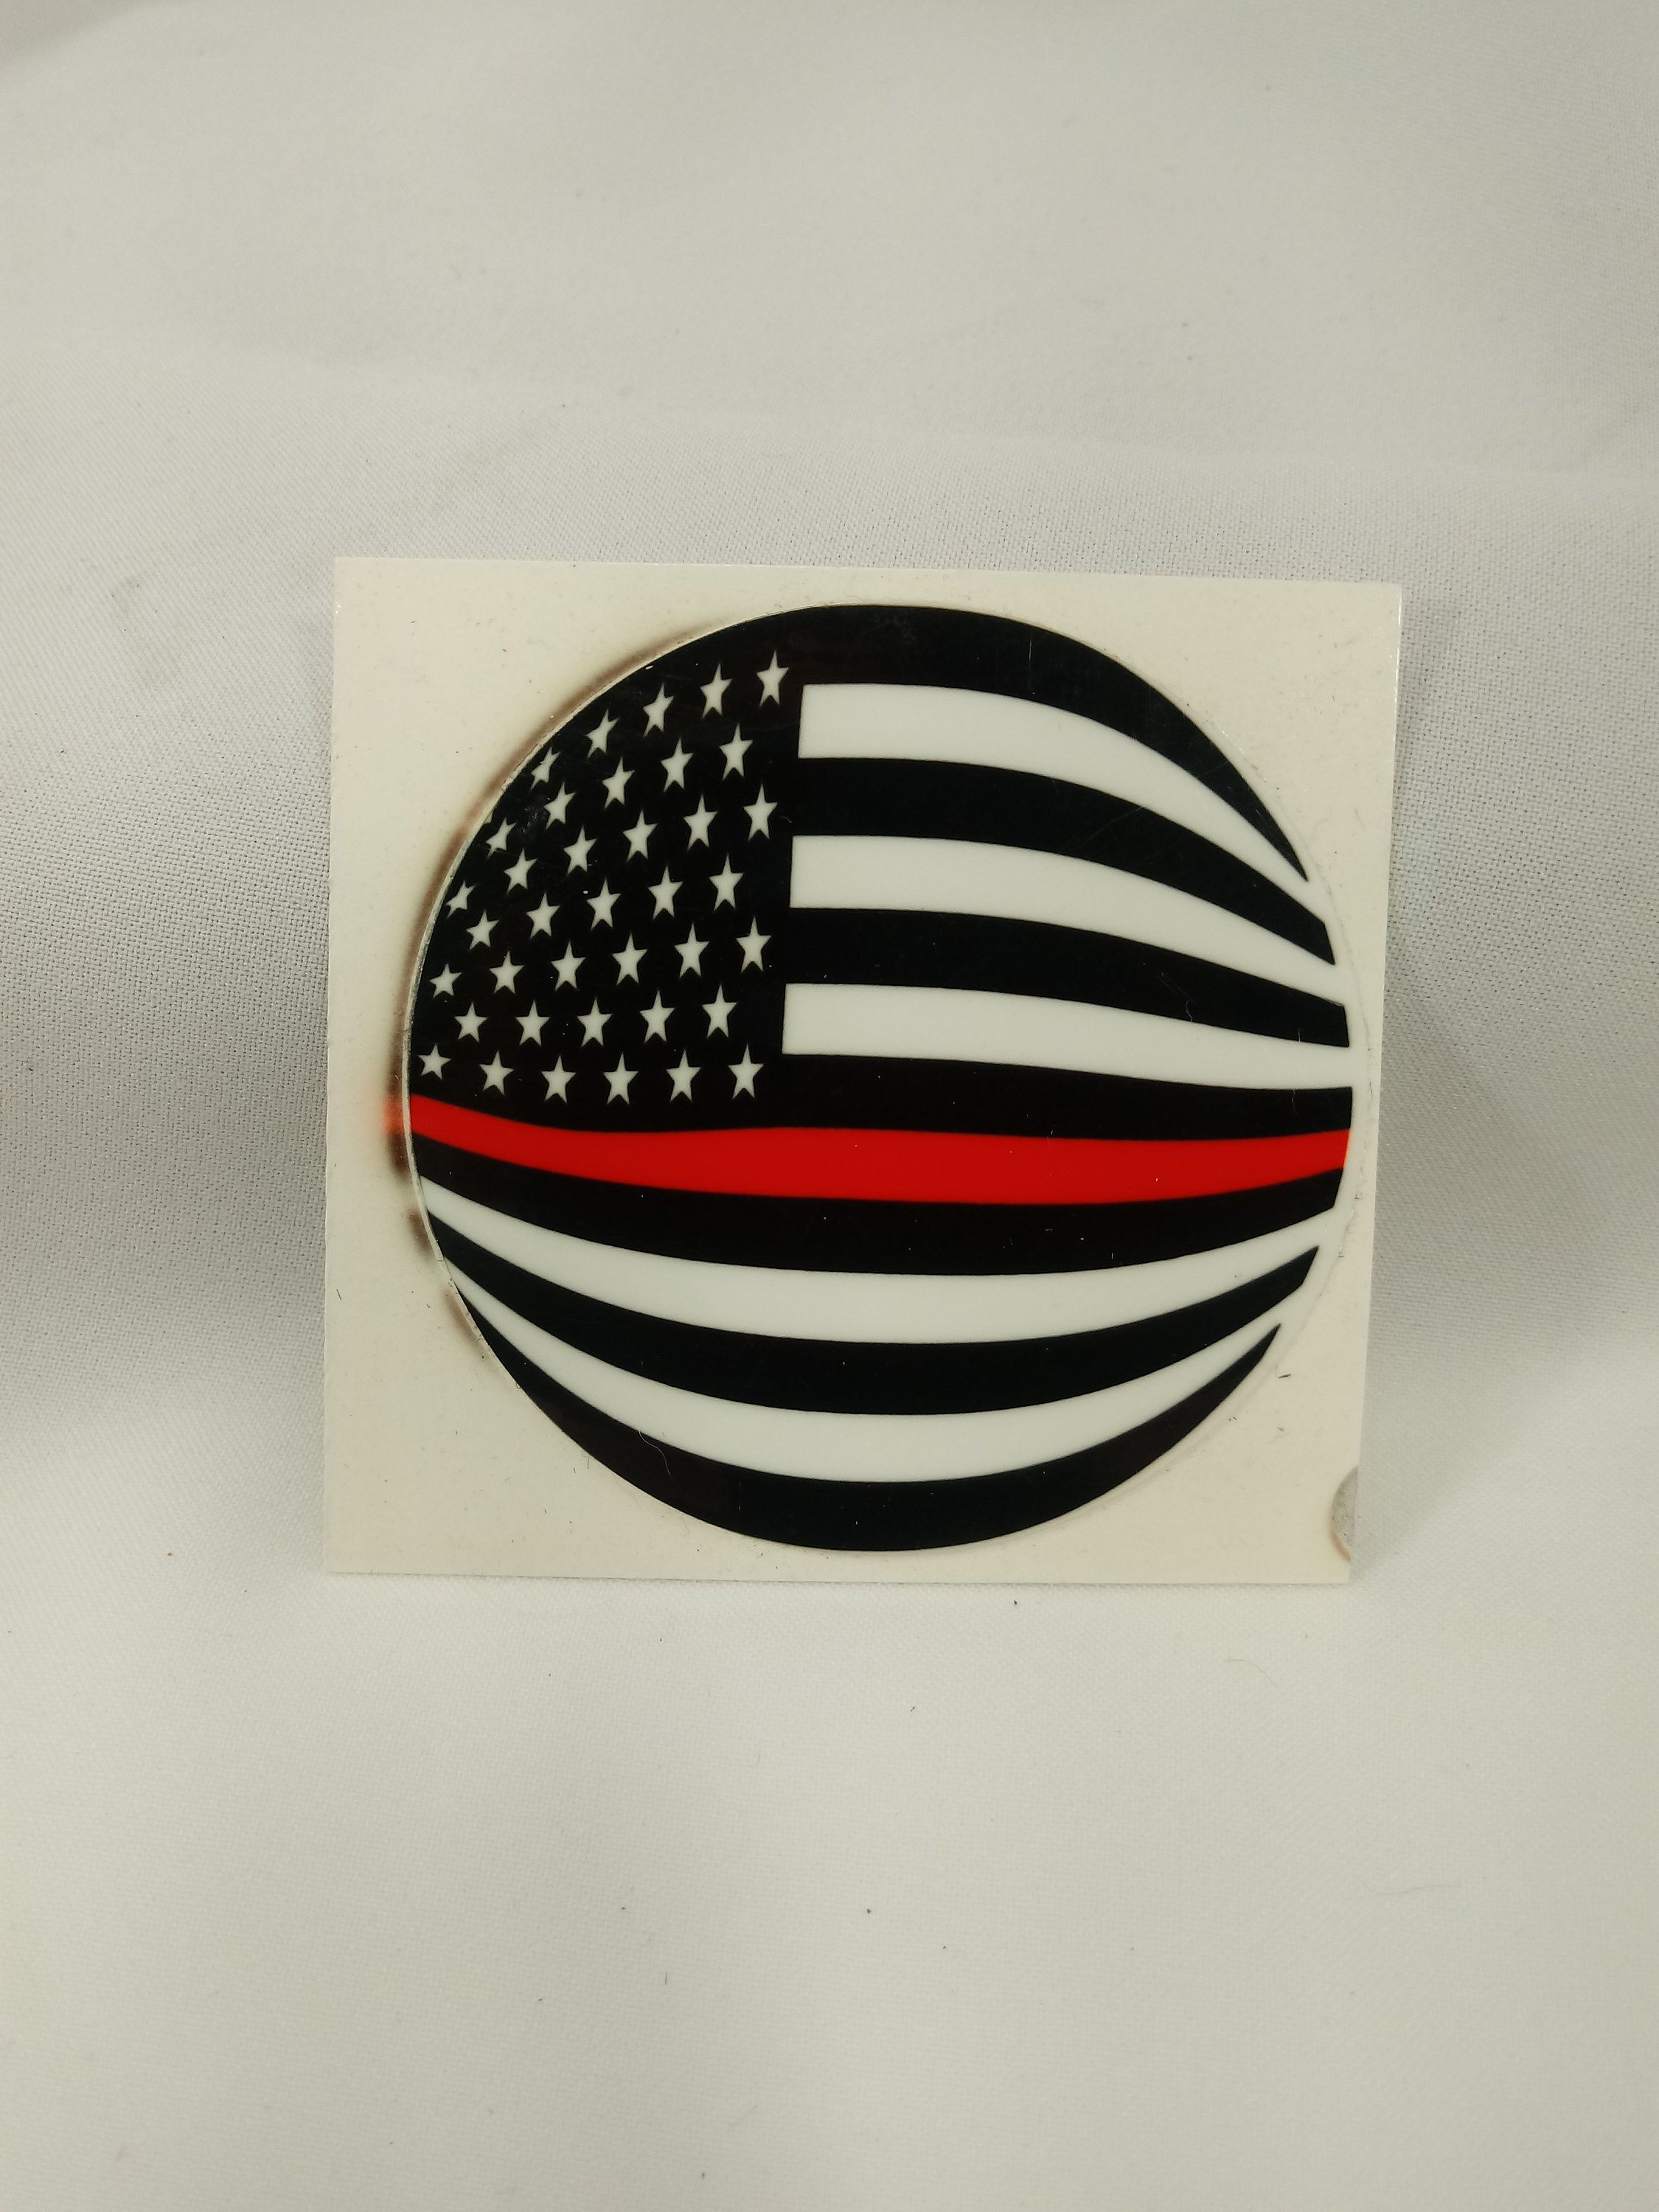 American flag sticker red stripefirefighter round shape made in usa by xannincdesign on etsy